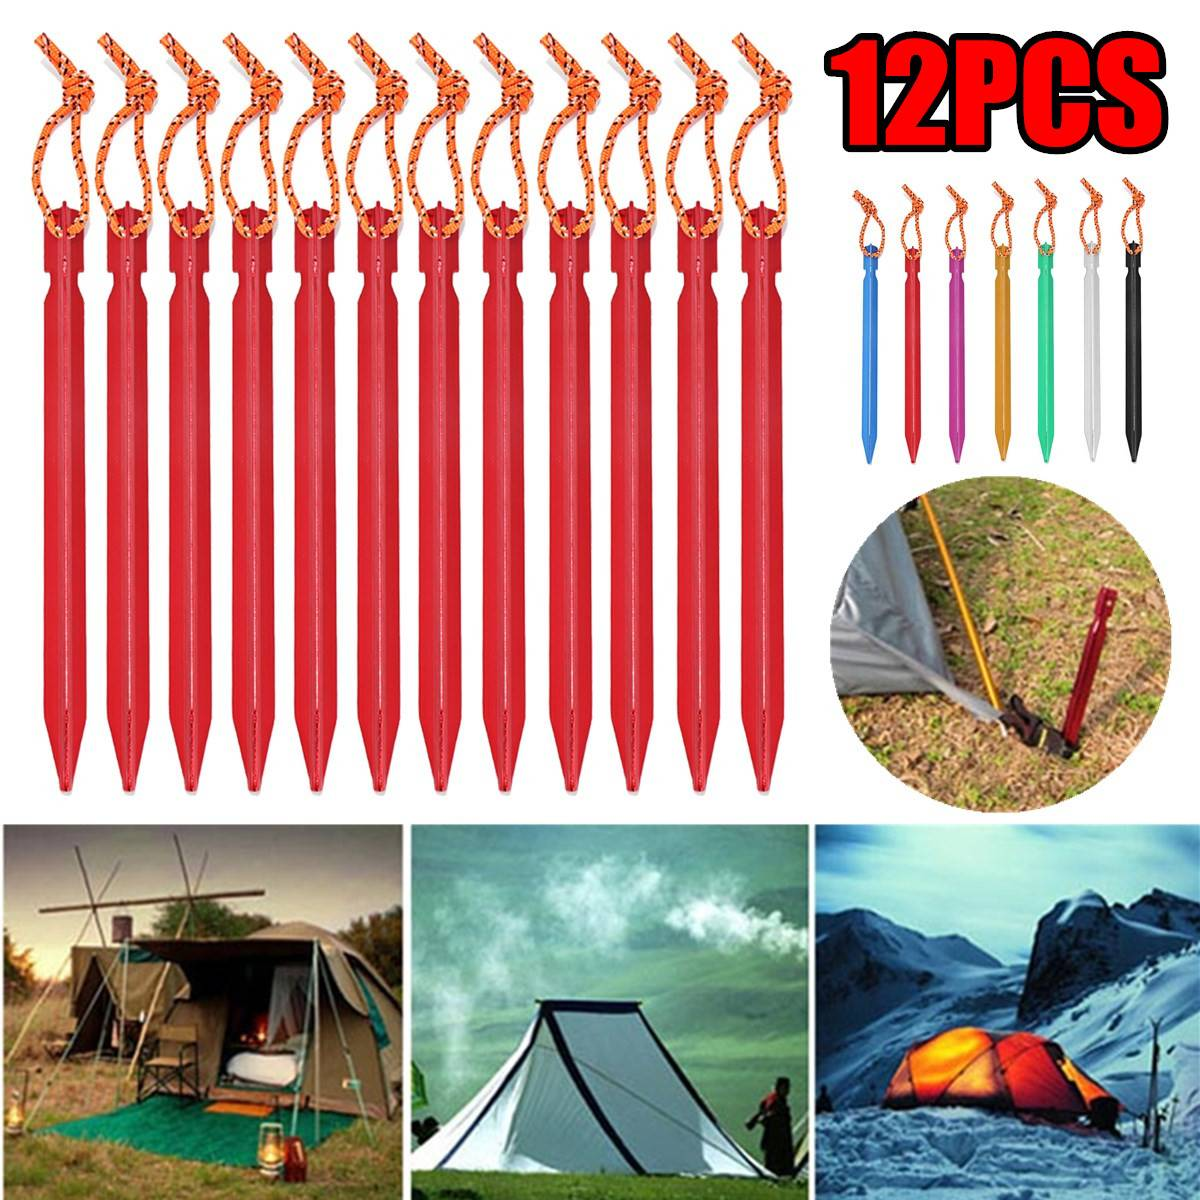 12PCS 18CM Tent Pegs Nail Aluminium Alloy Tent Stakes With Rope Camping Accessories Equipment Outdoor Travel Beach Tent Building